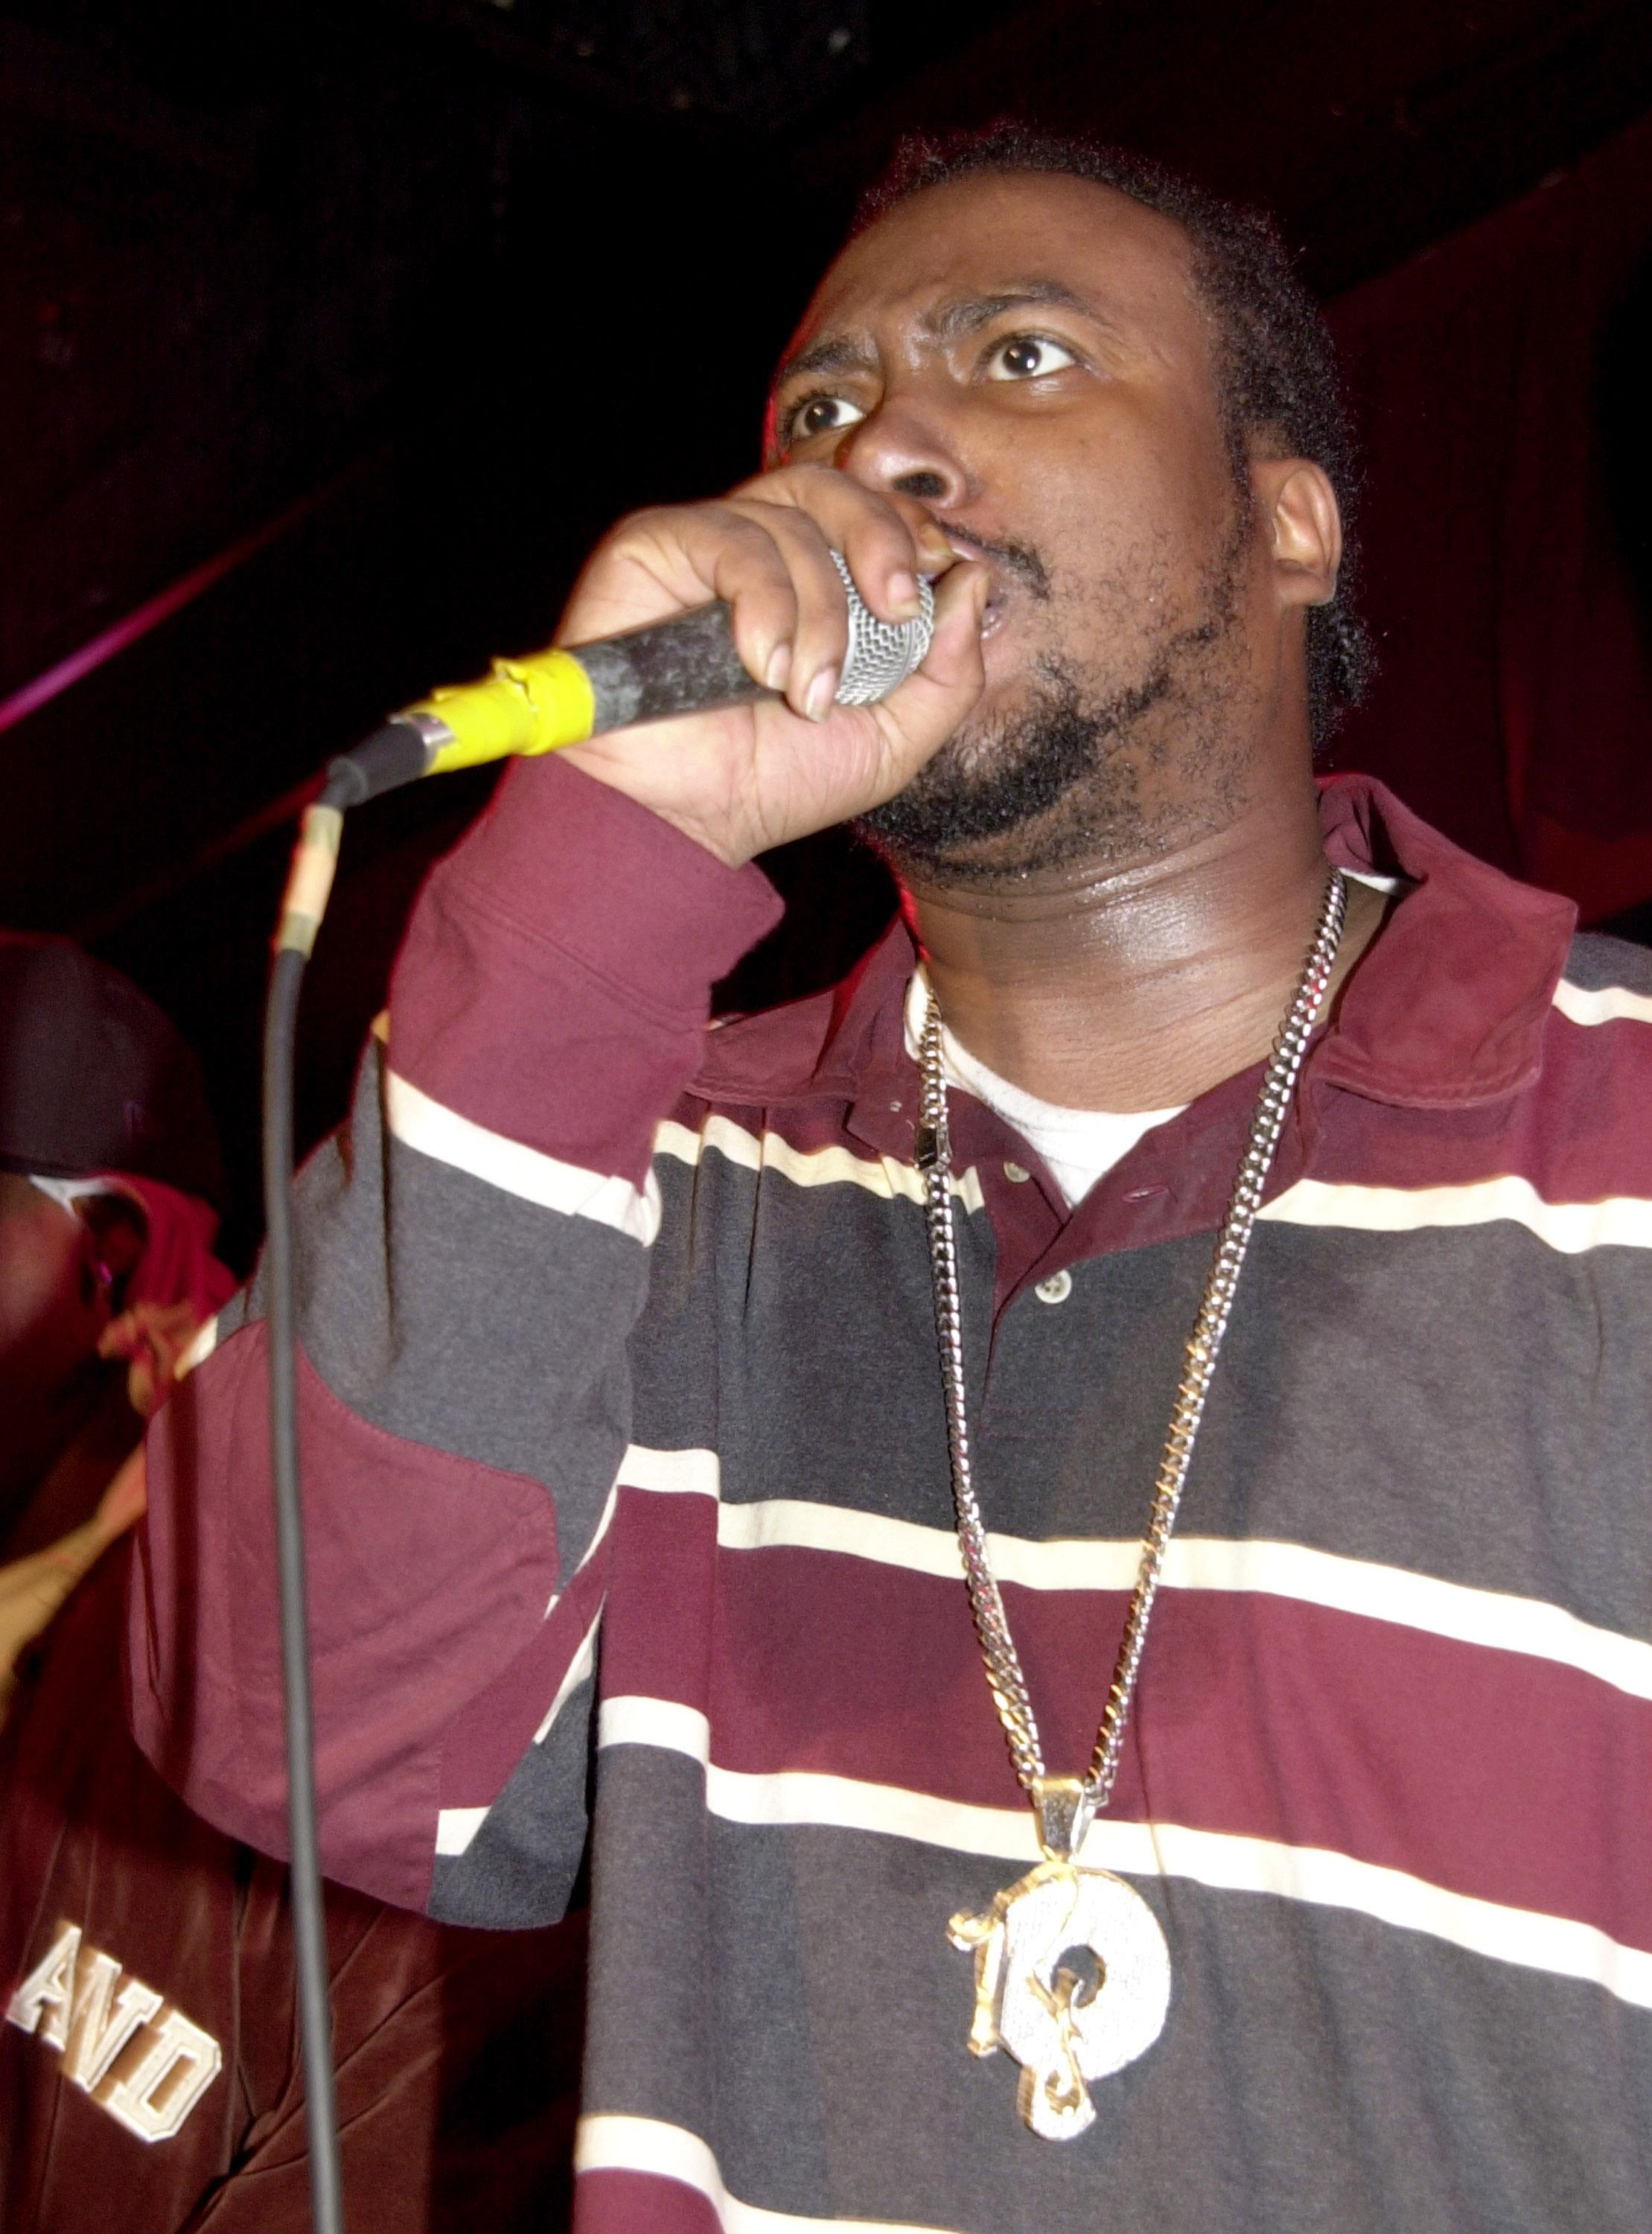 RZA and Old Dirty Perform Live at BB King